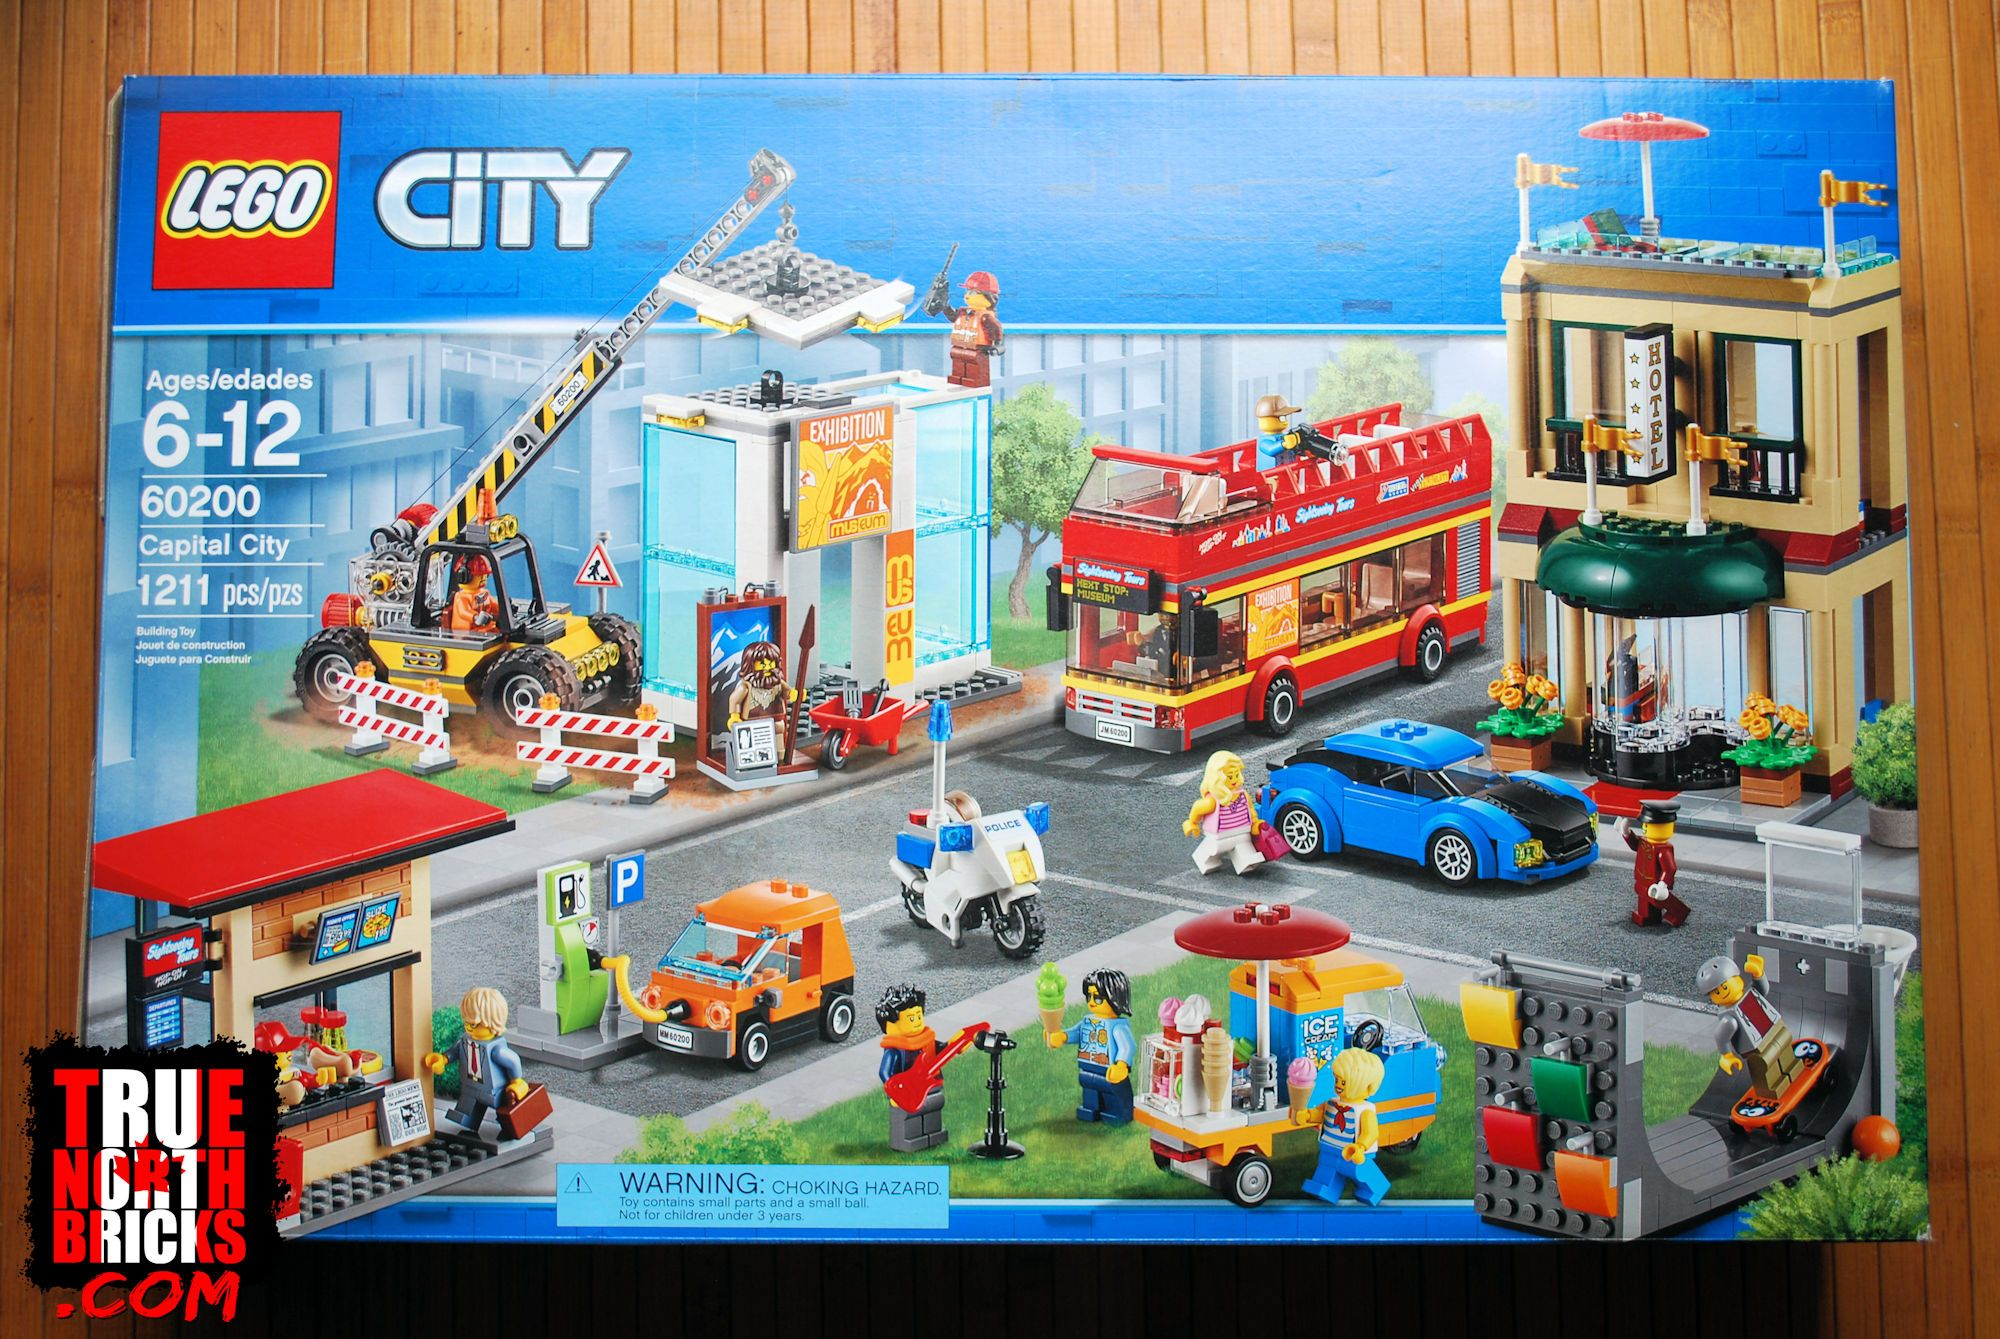 Capital City 60200 Lego Set Review True North Bricks In 2020 Lego City Lego Sets Lego